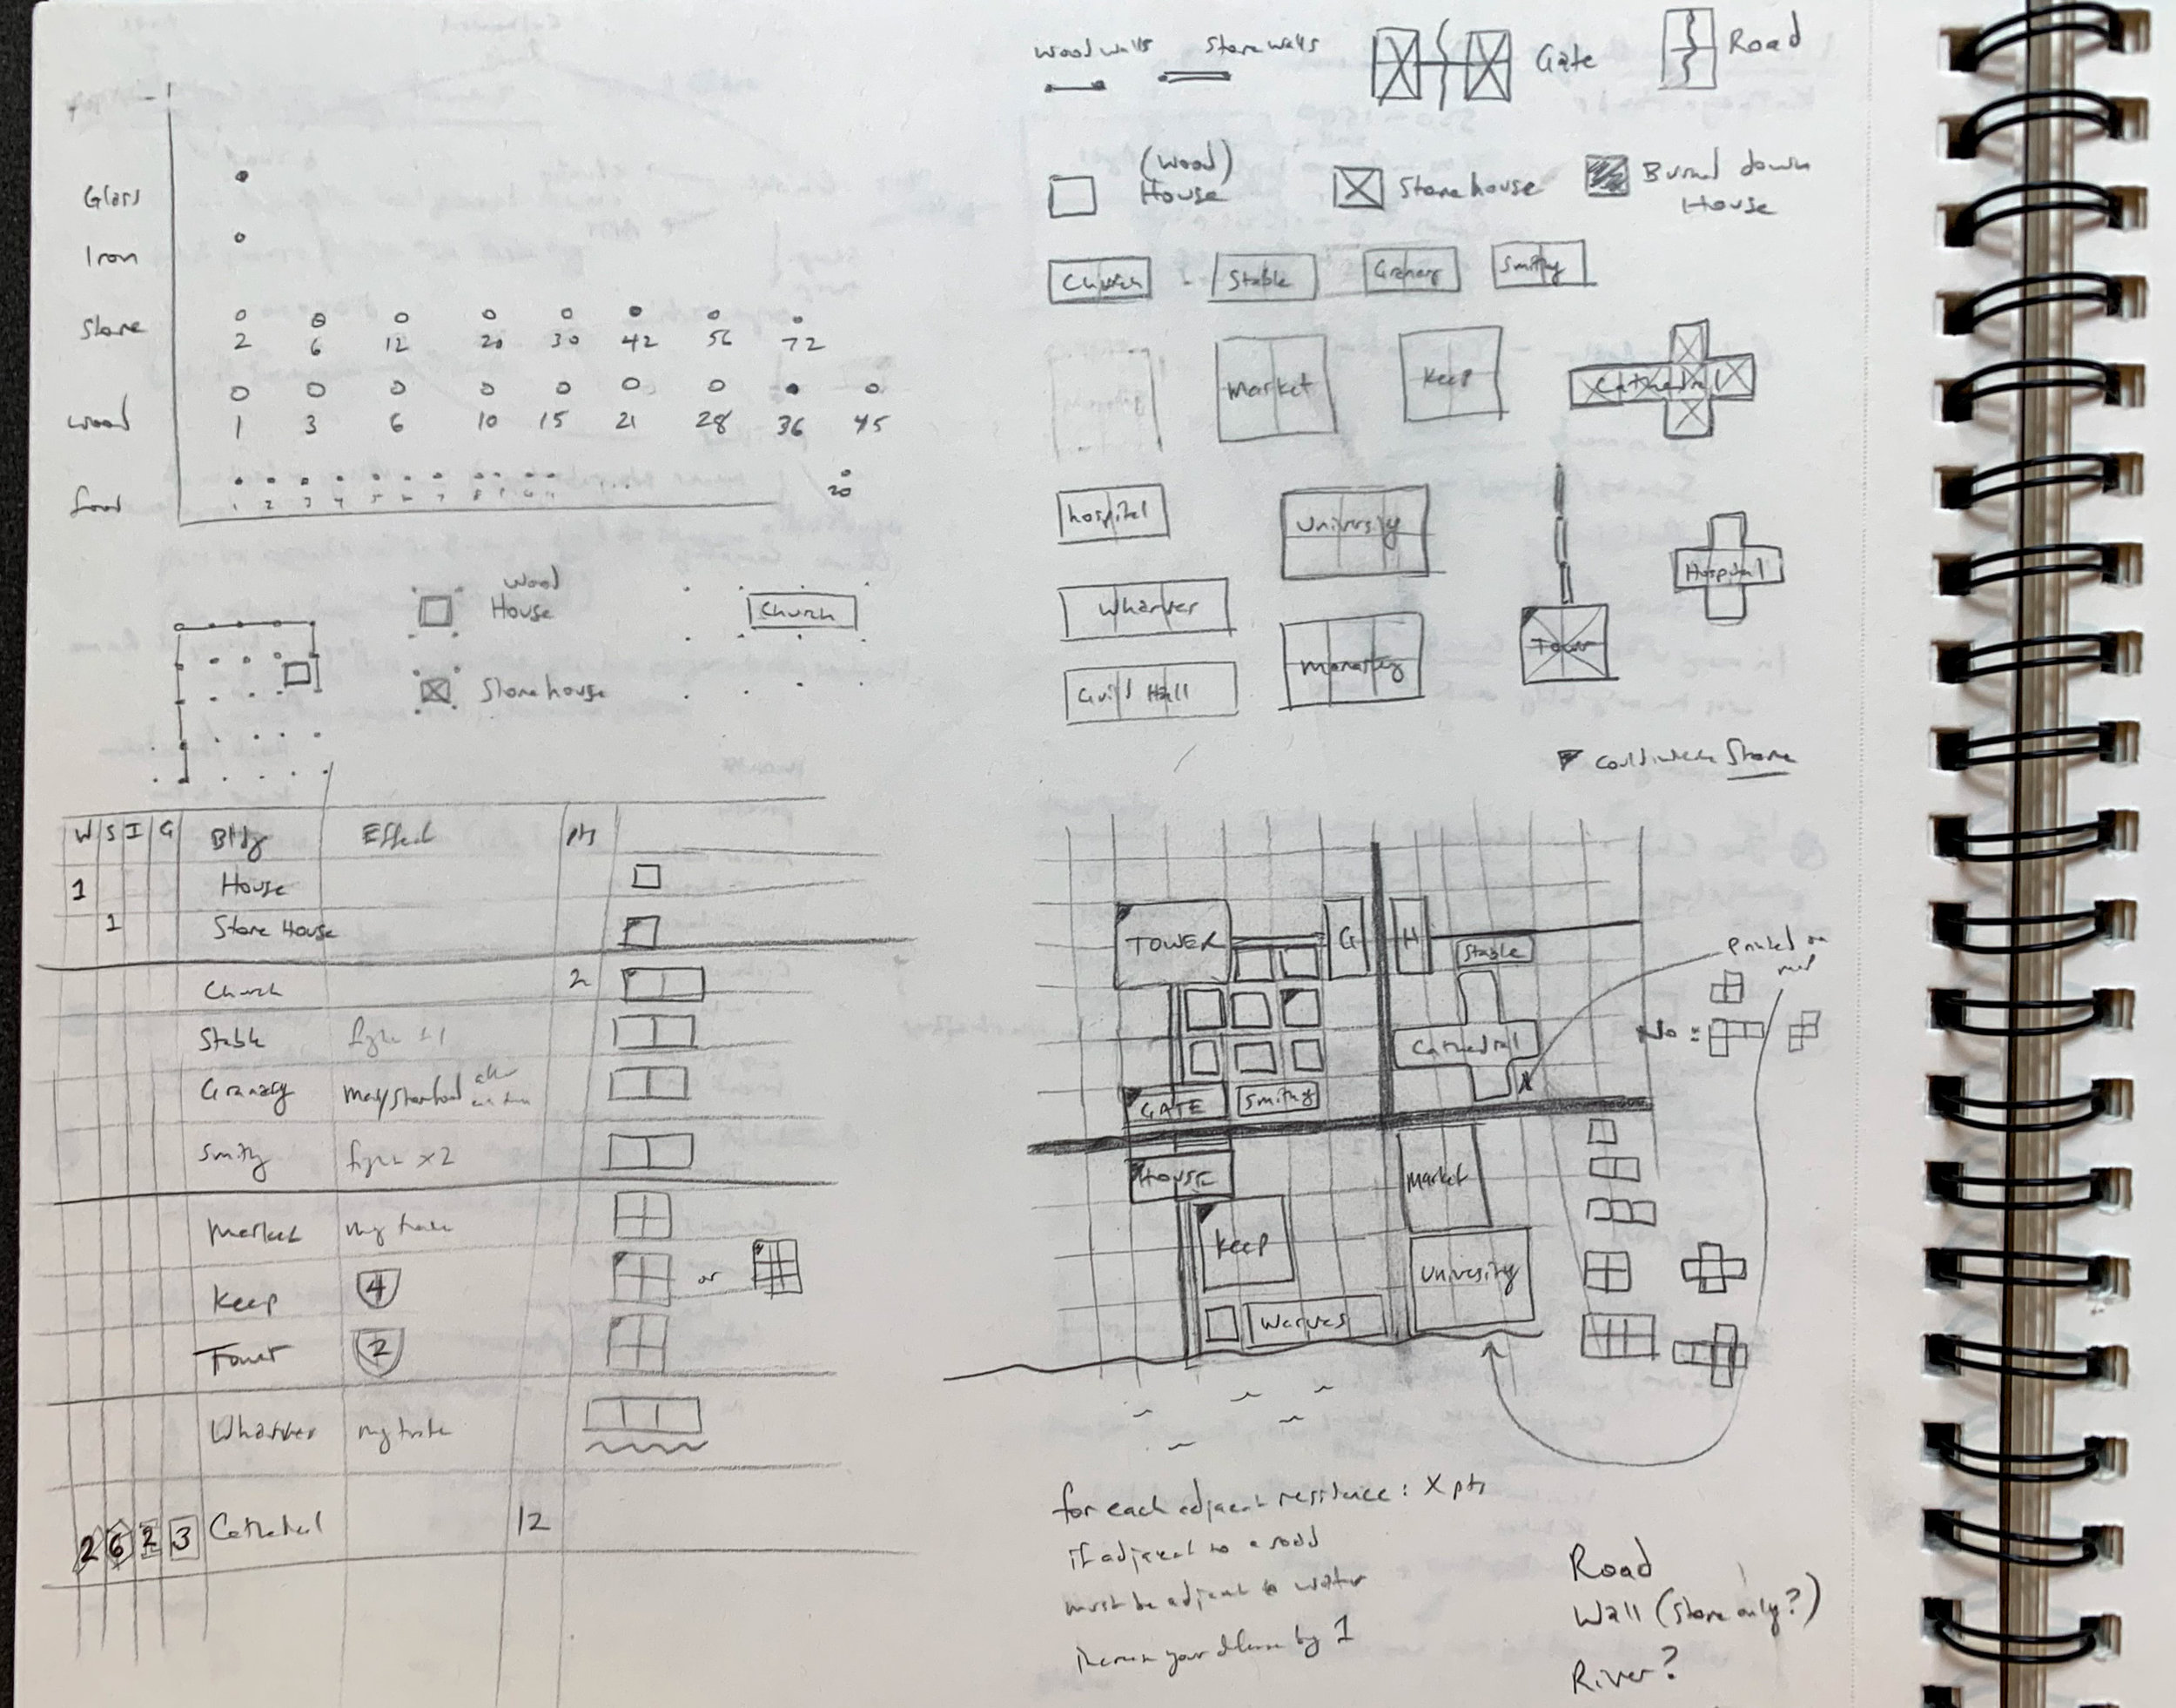 Early sketches of buildings and resources.